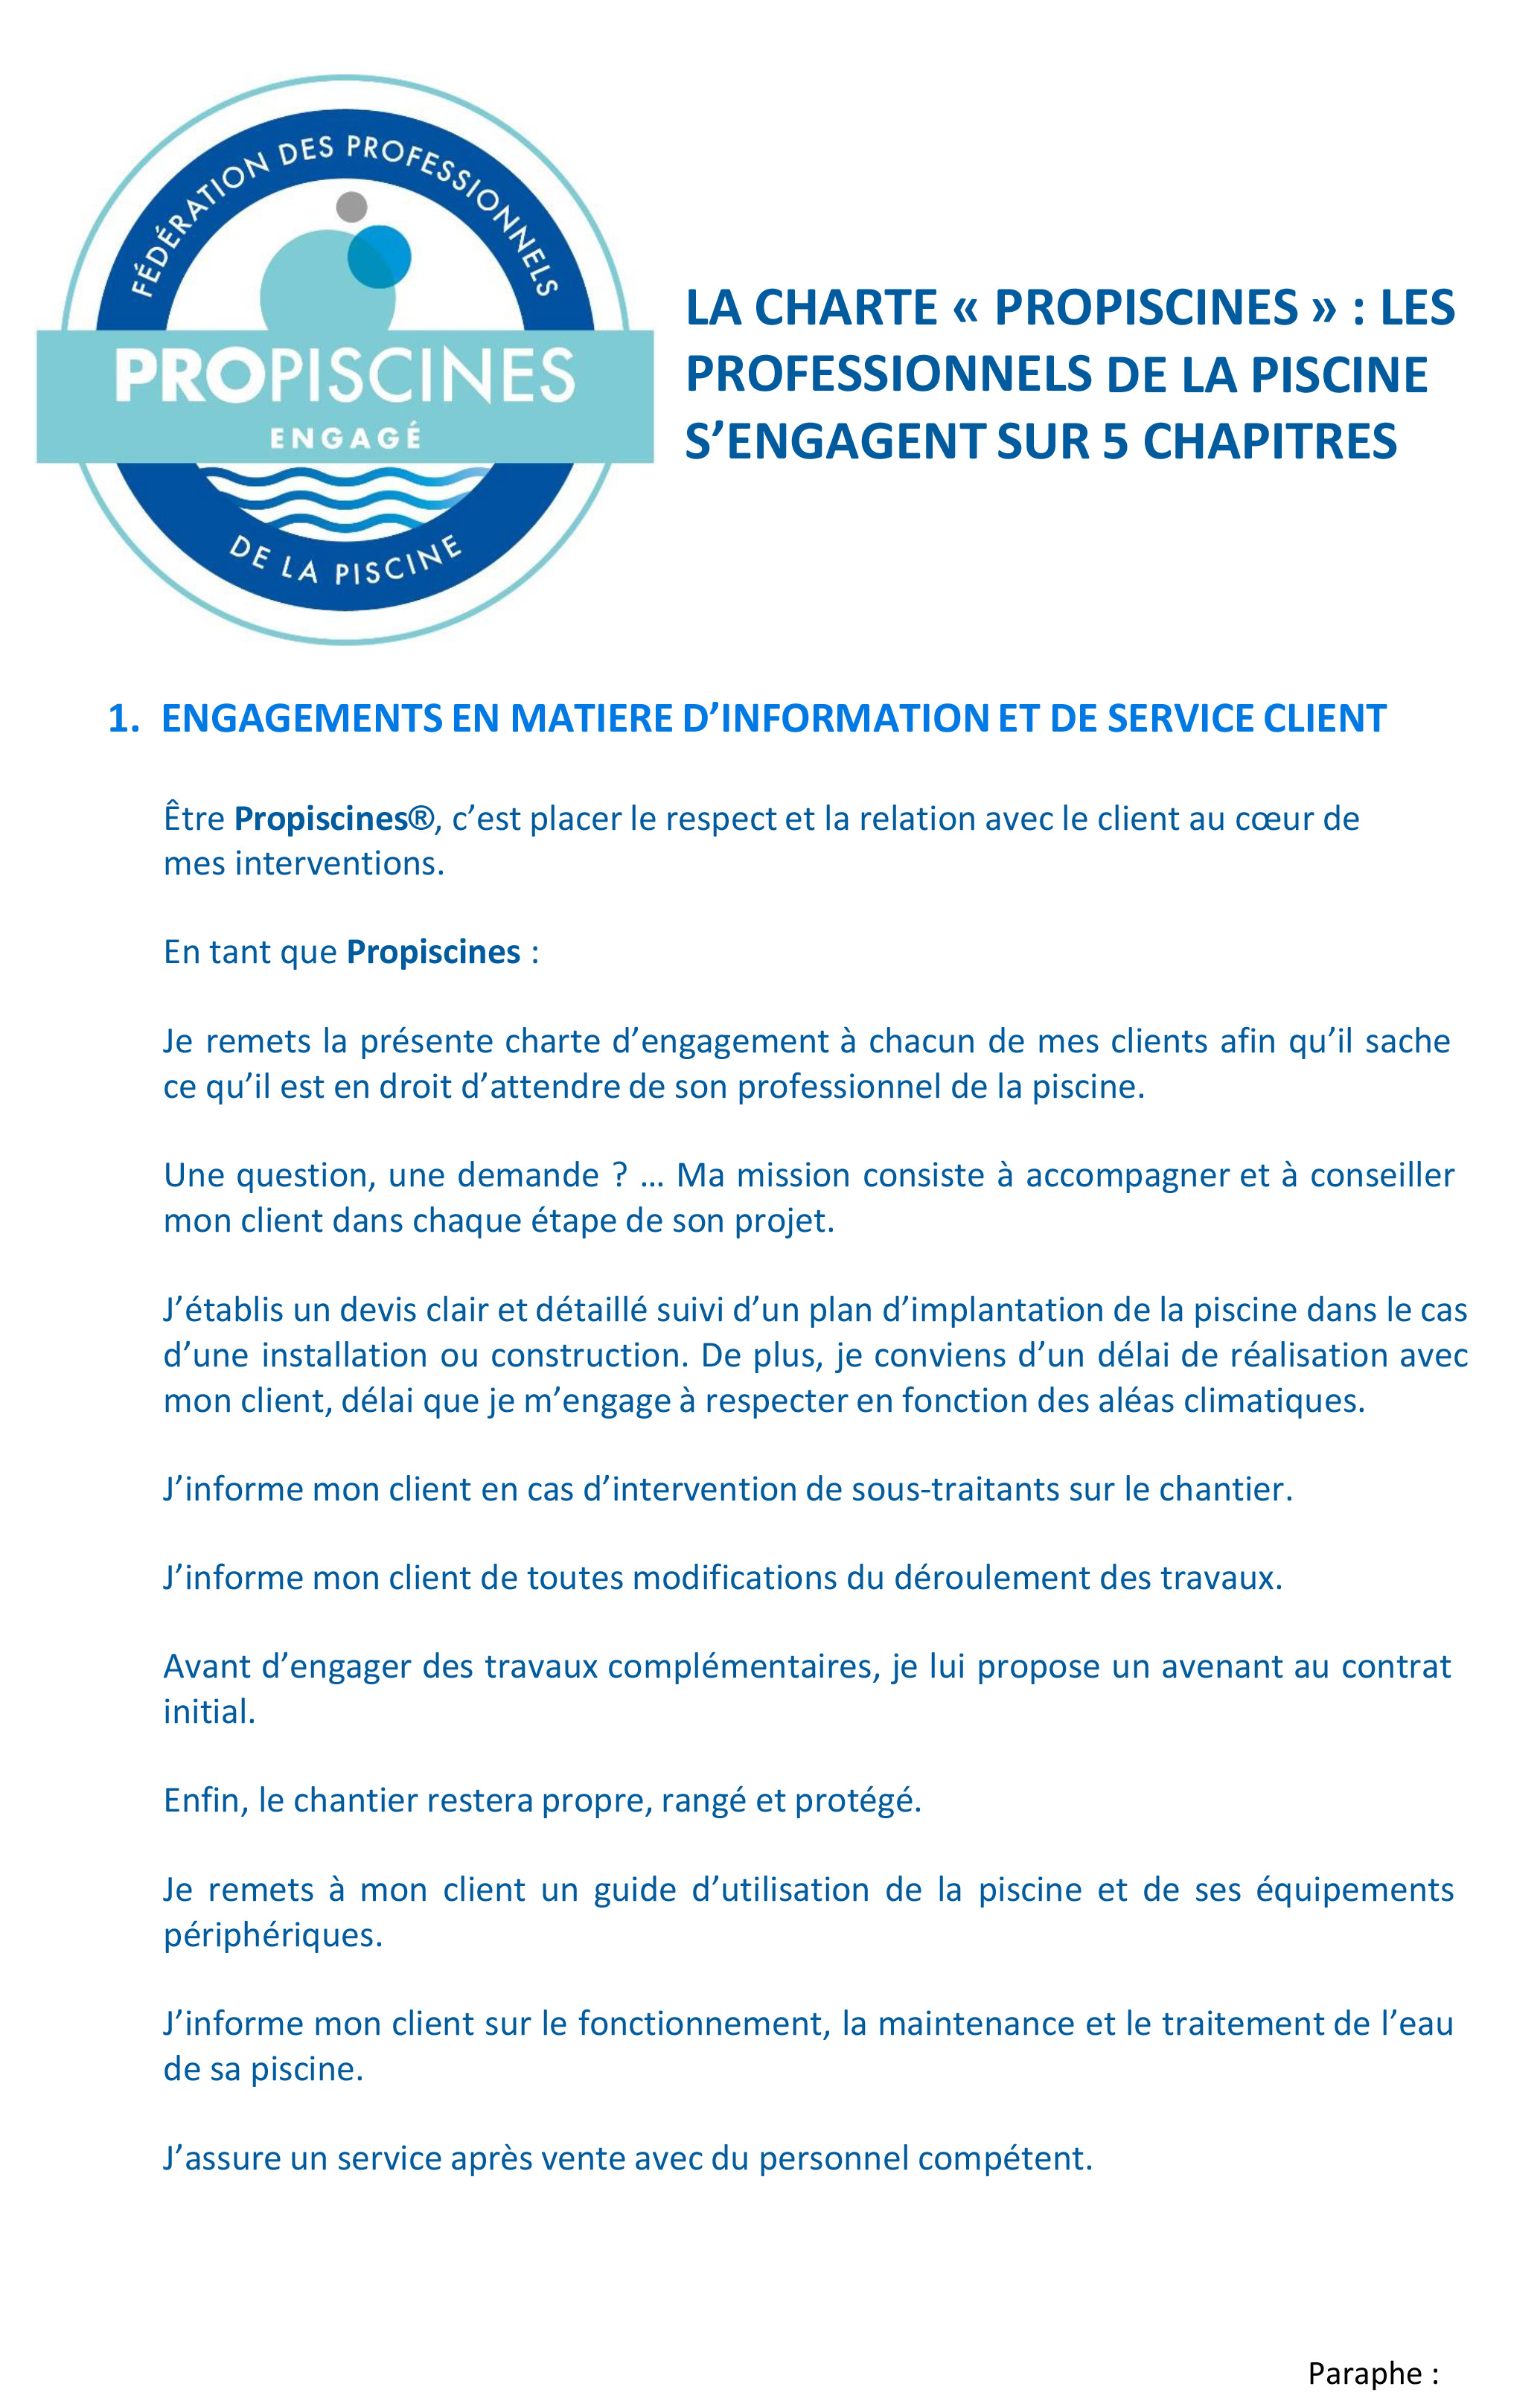 Description de la charte d'engagements Propiscines